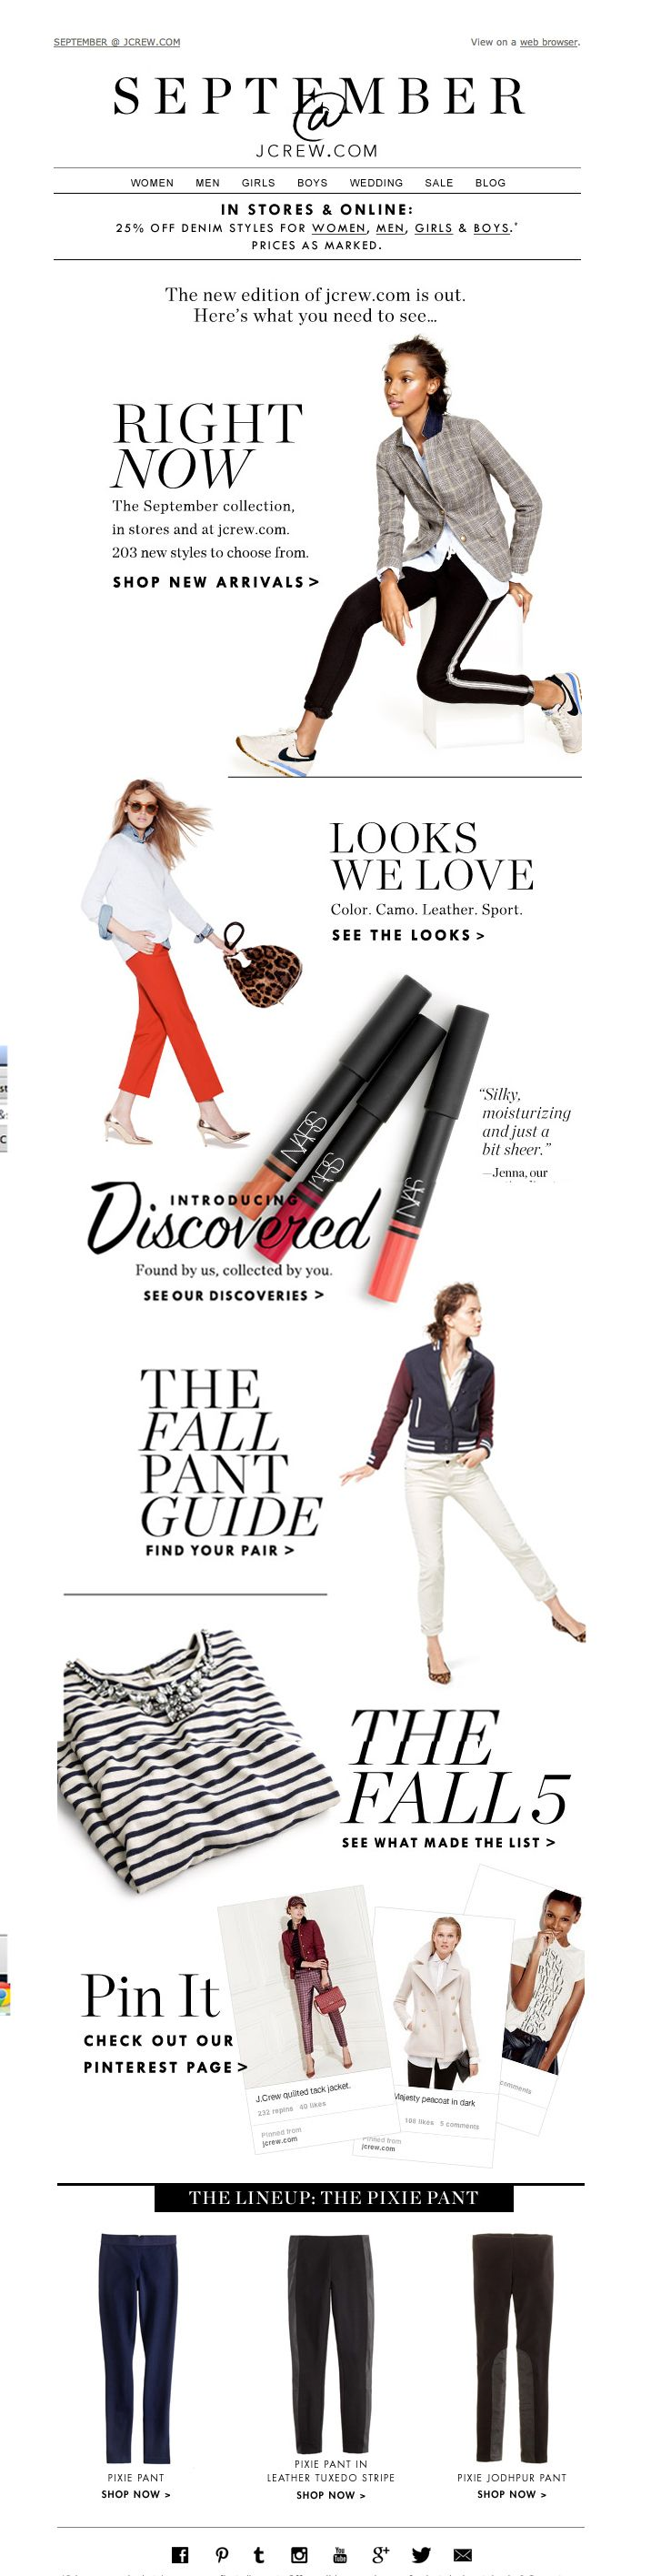 #newsletter J.Crew 09.2013 Subject: September at jcrew.com: what you need to see